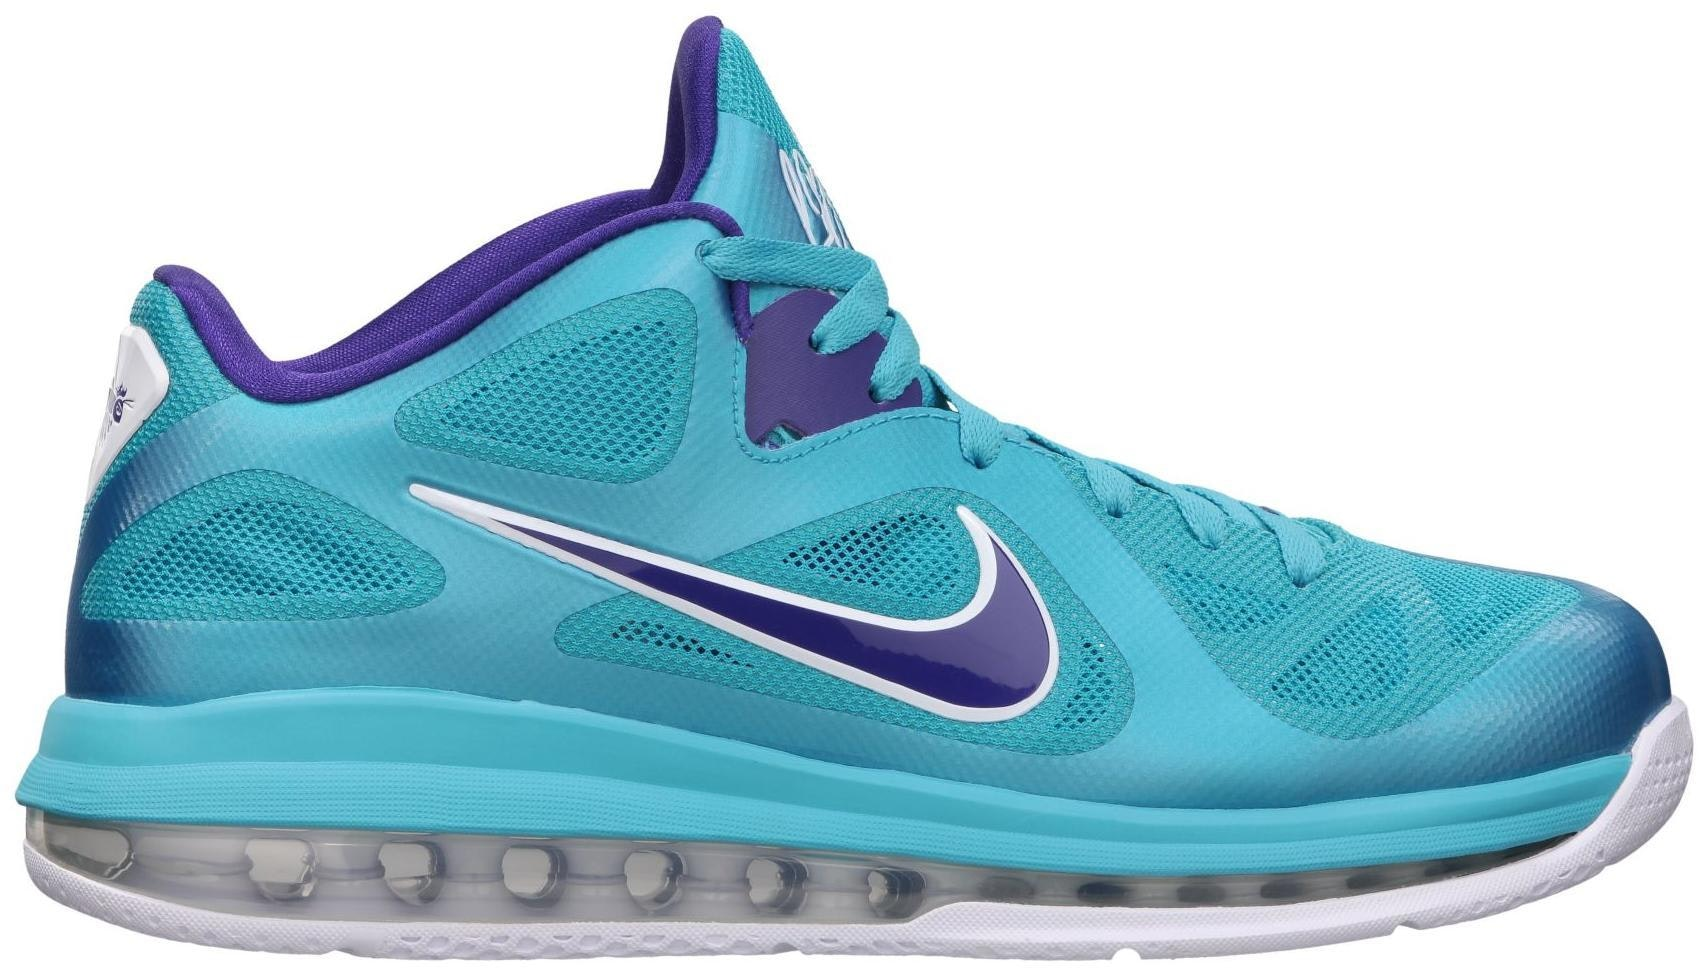 For Sale Nike Lebron 9 Low Pink Blue